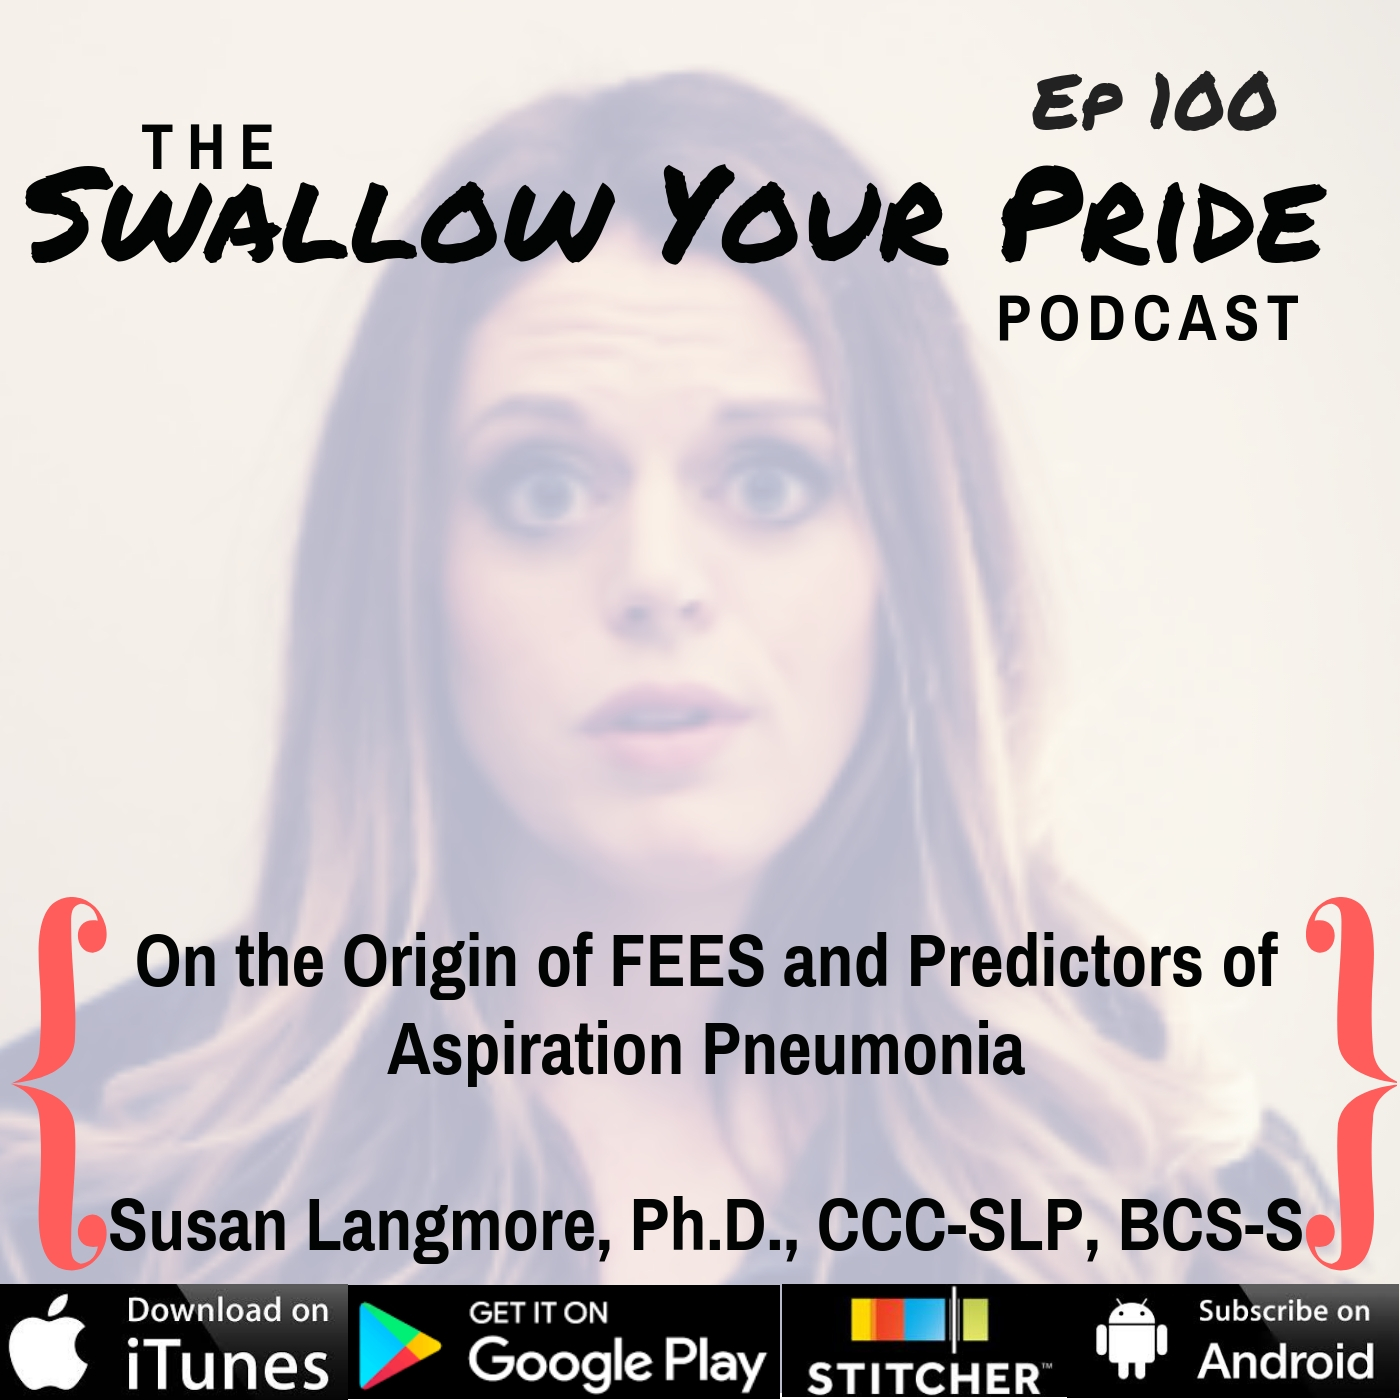 100 – Susan Langmore PhD,  CCC-SLP, BCS-S – On the Origin of FEES and Predictors of Aspiration Pneumonia